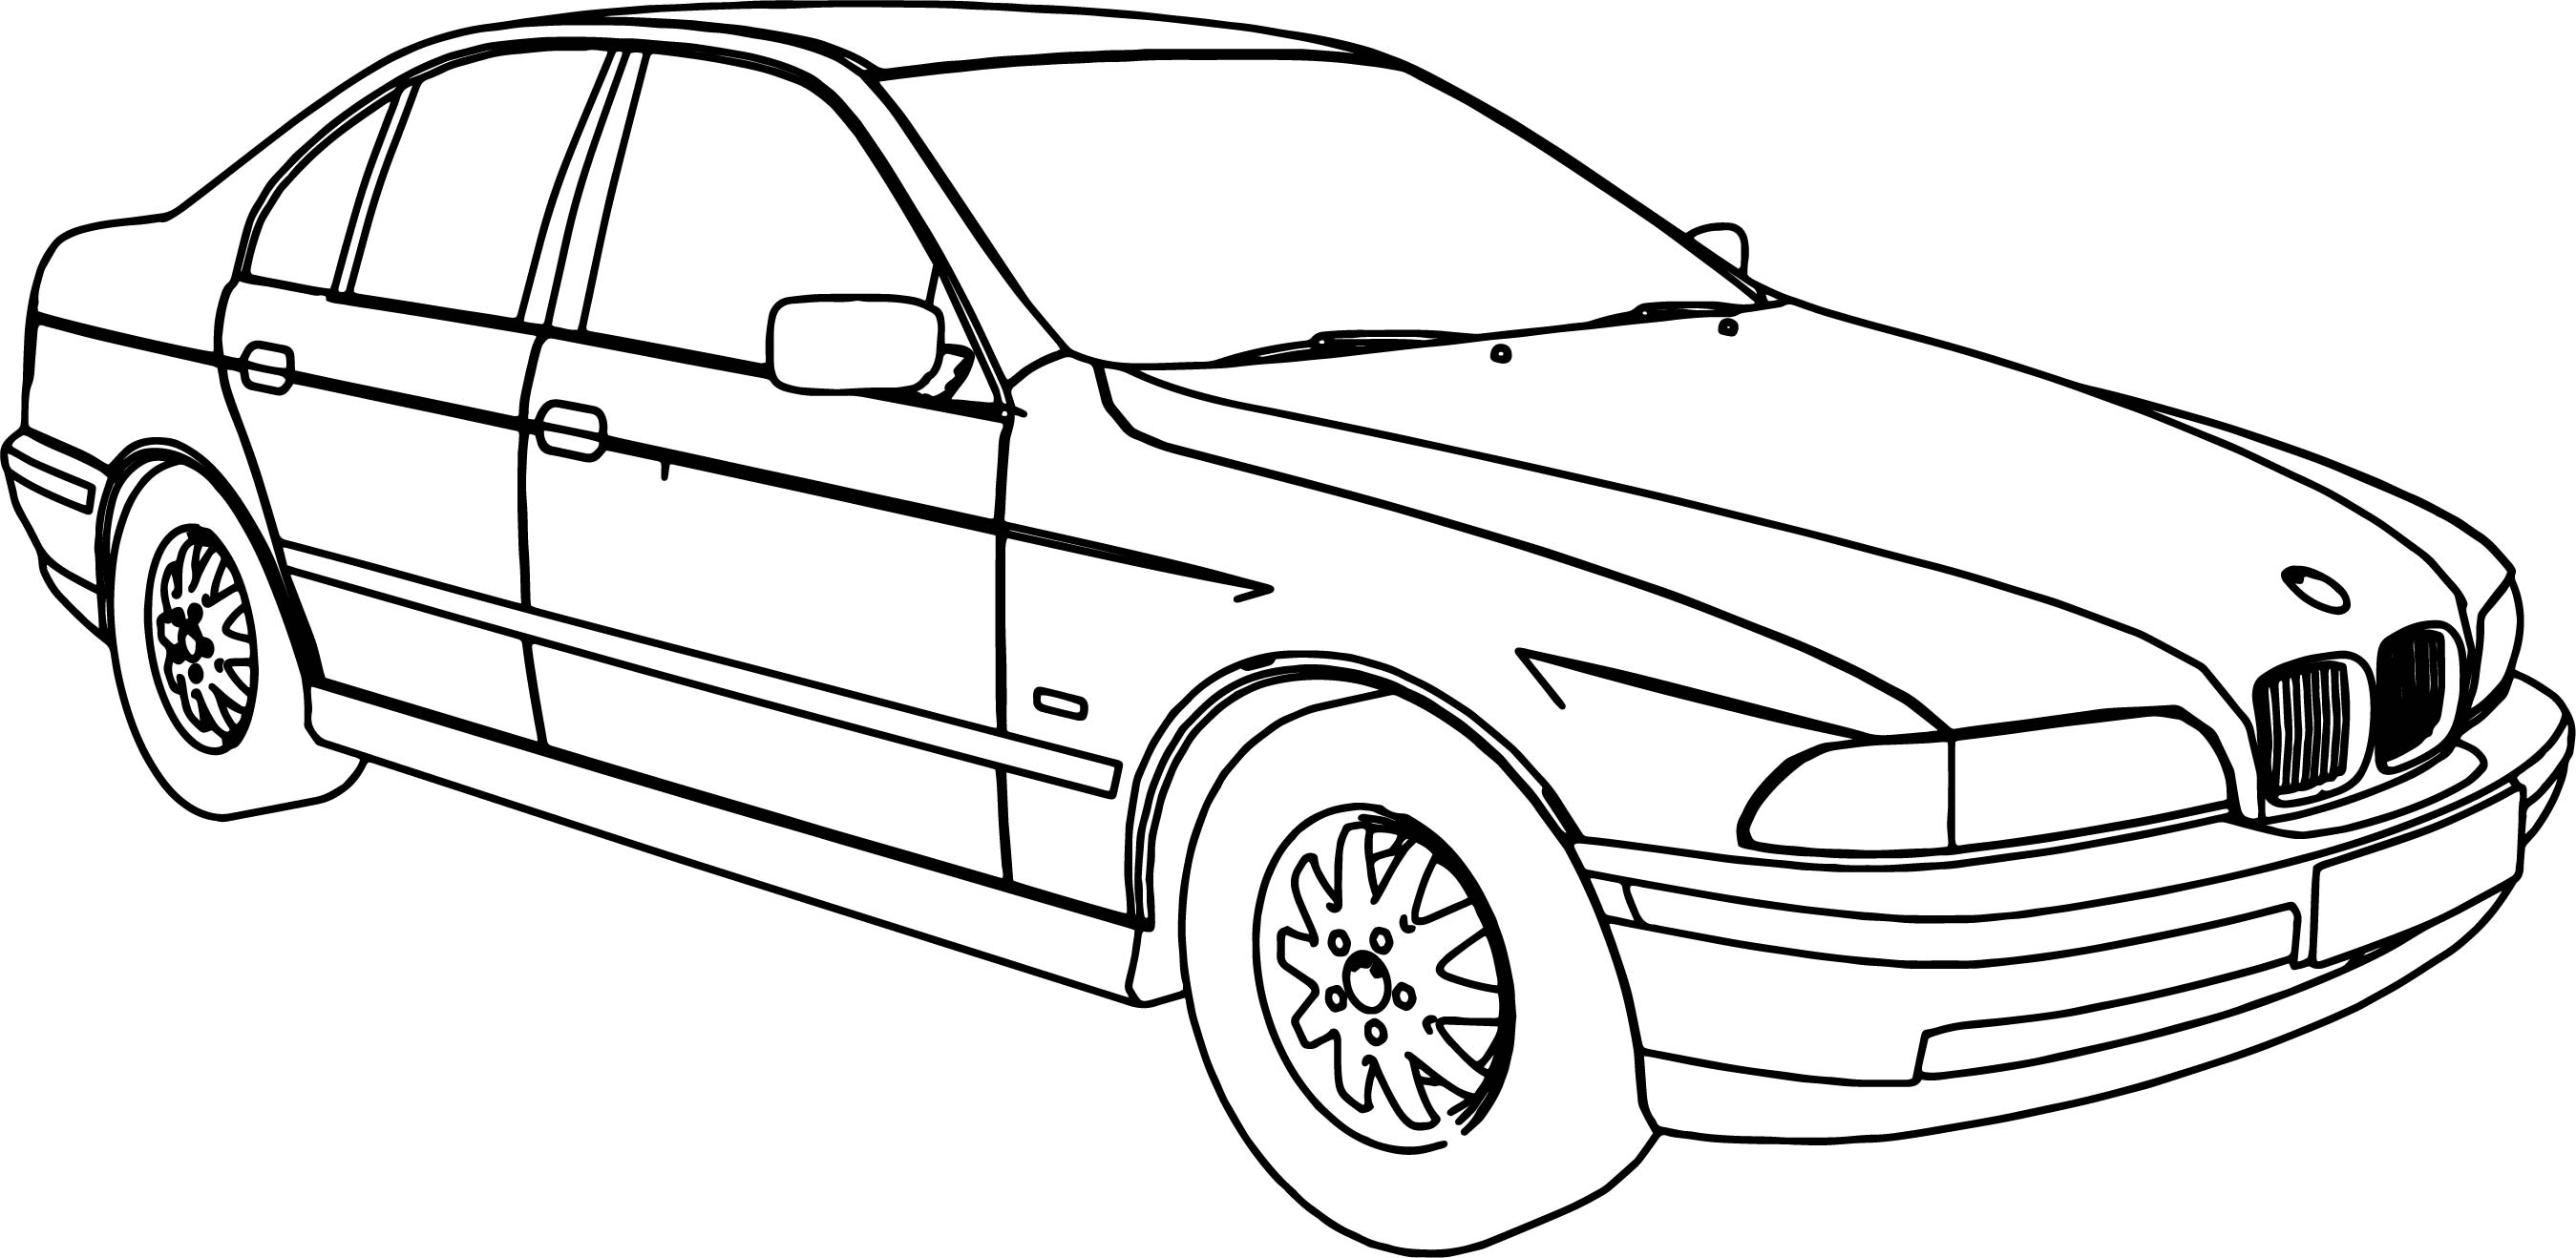 Bmw 540 Model Car Coloring Page Wecoloringpage